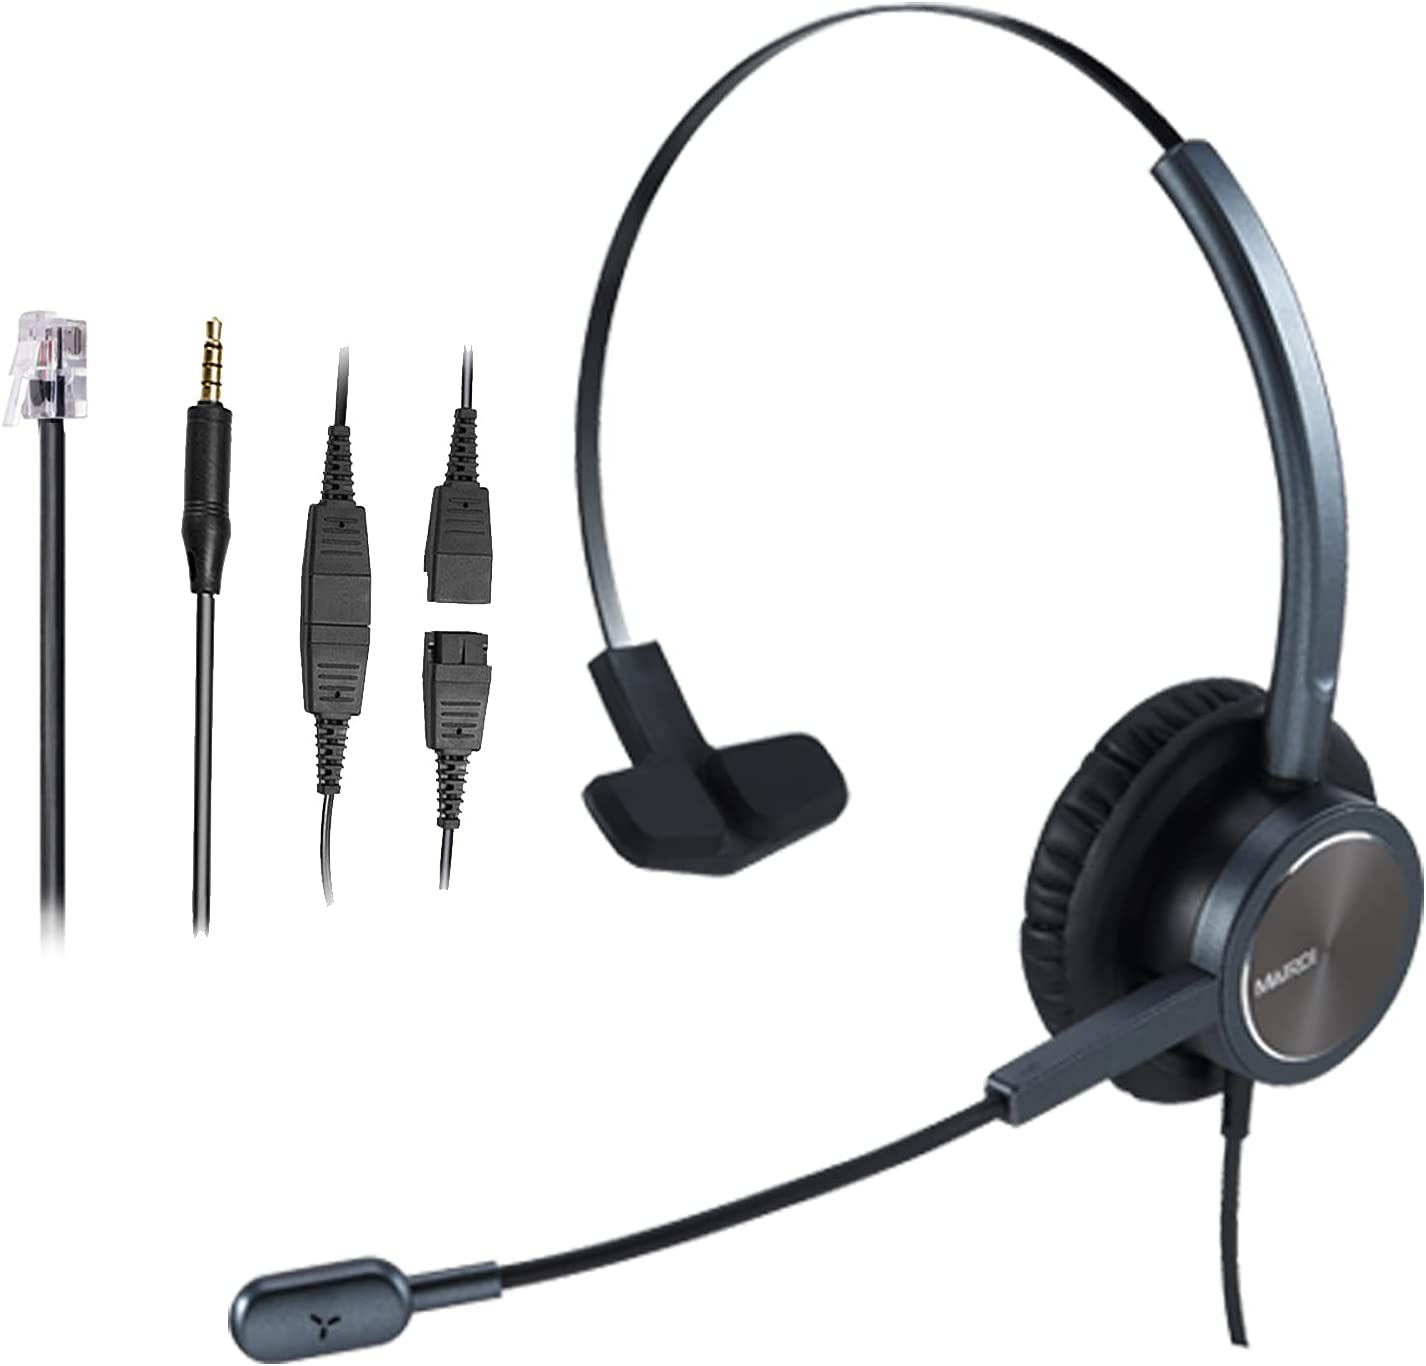 Call Center Headset with RJ9 & 3.5mm Connectors for Landline Deskphone and Smartphone PC Laptops, Mono Office Telephone Headset with Noise Canceling Microphone for Yealink Grandstream Snom